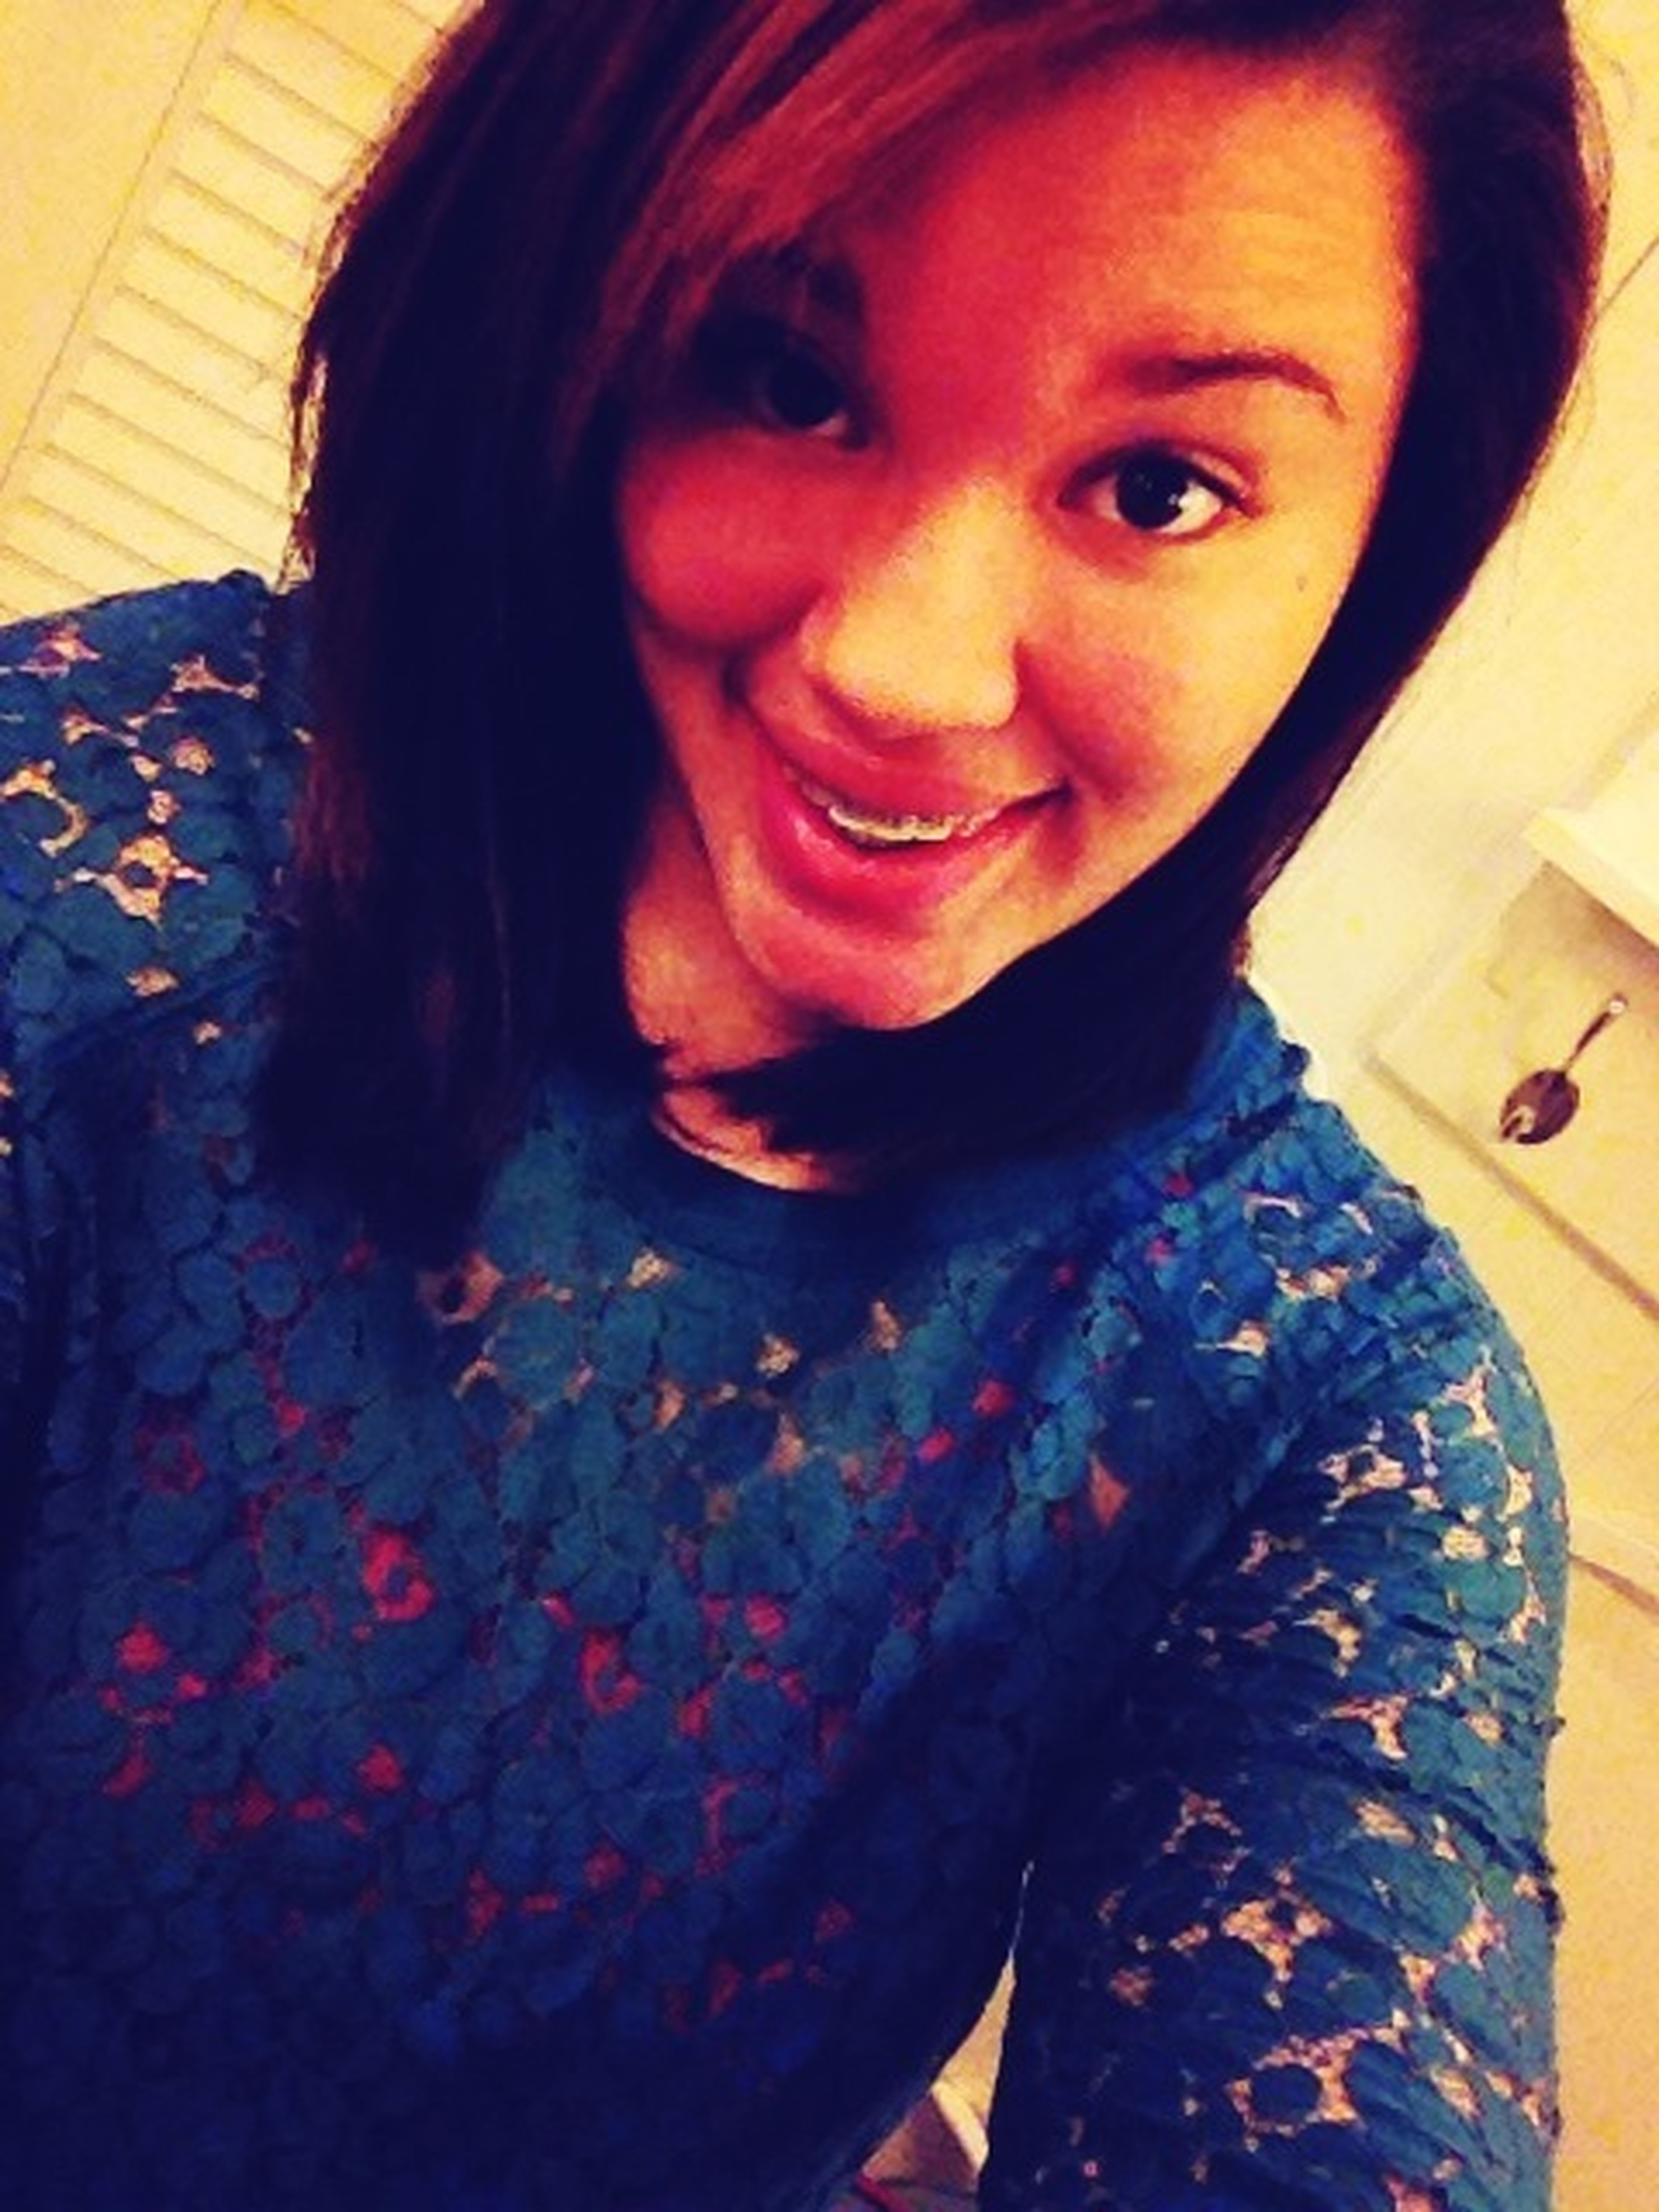 Shirt I got for my valentines day date (: